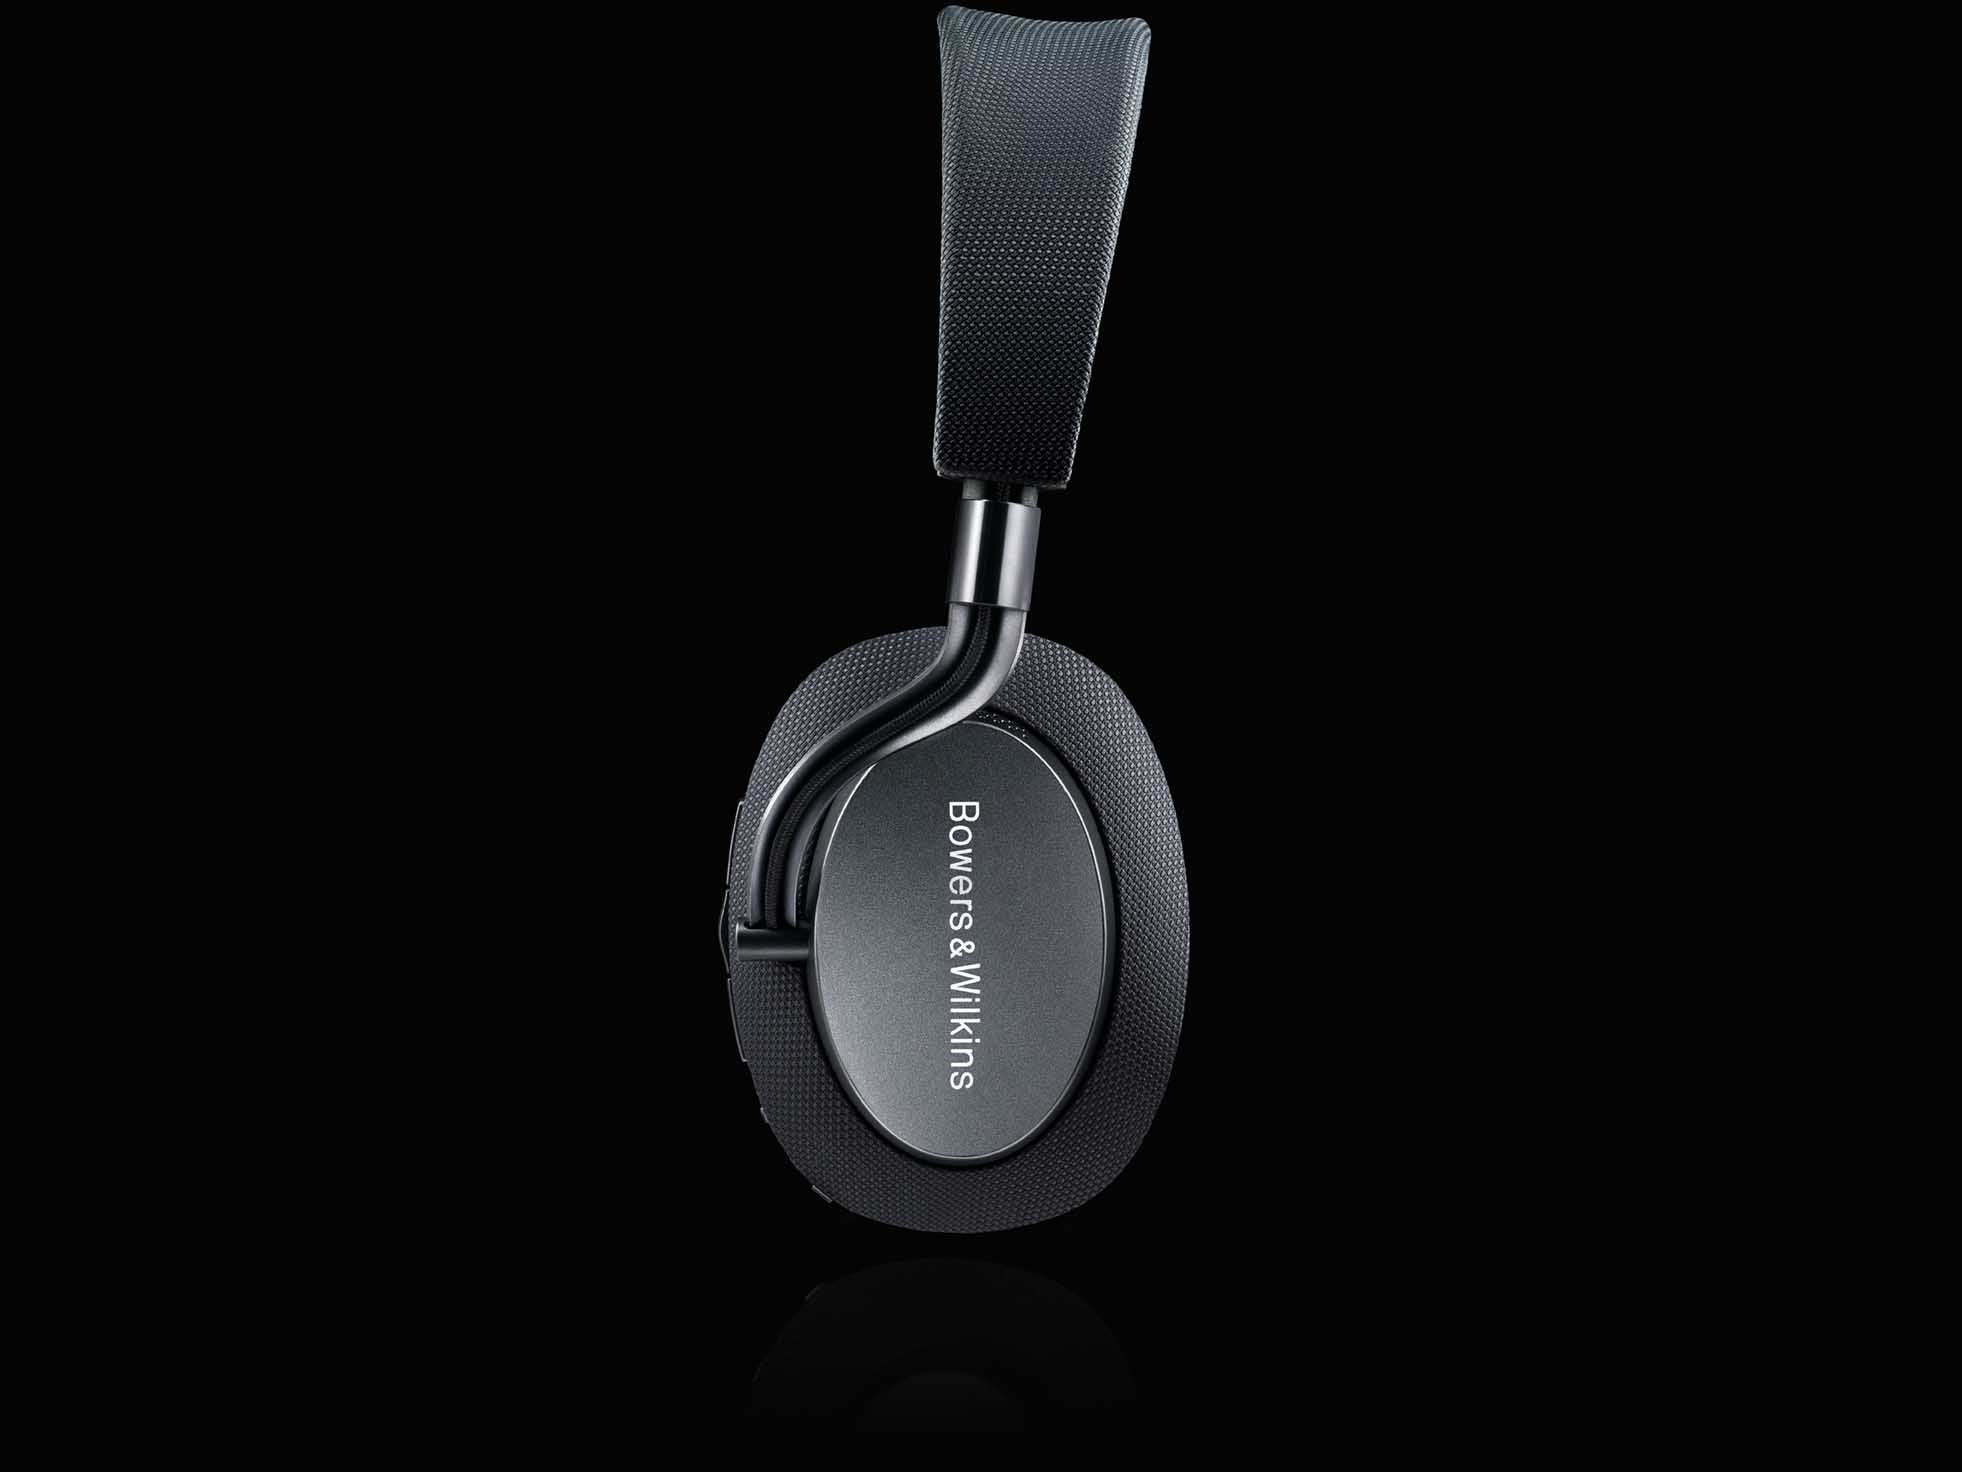 Bowers Wilkins Bw Px Headphones Elyqq Active Noise Cancelling Wireless